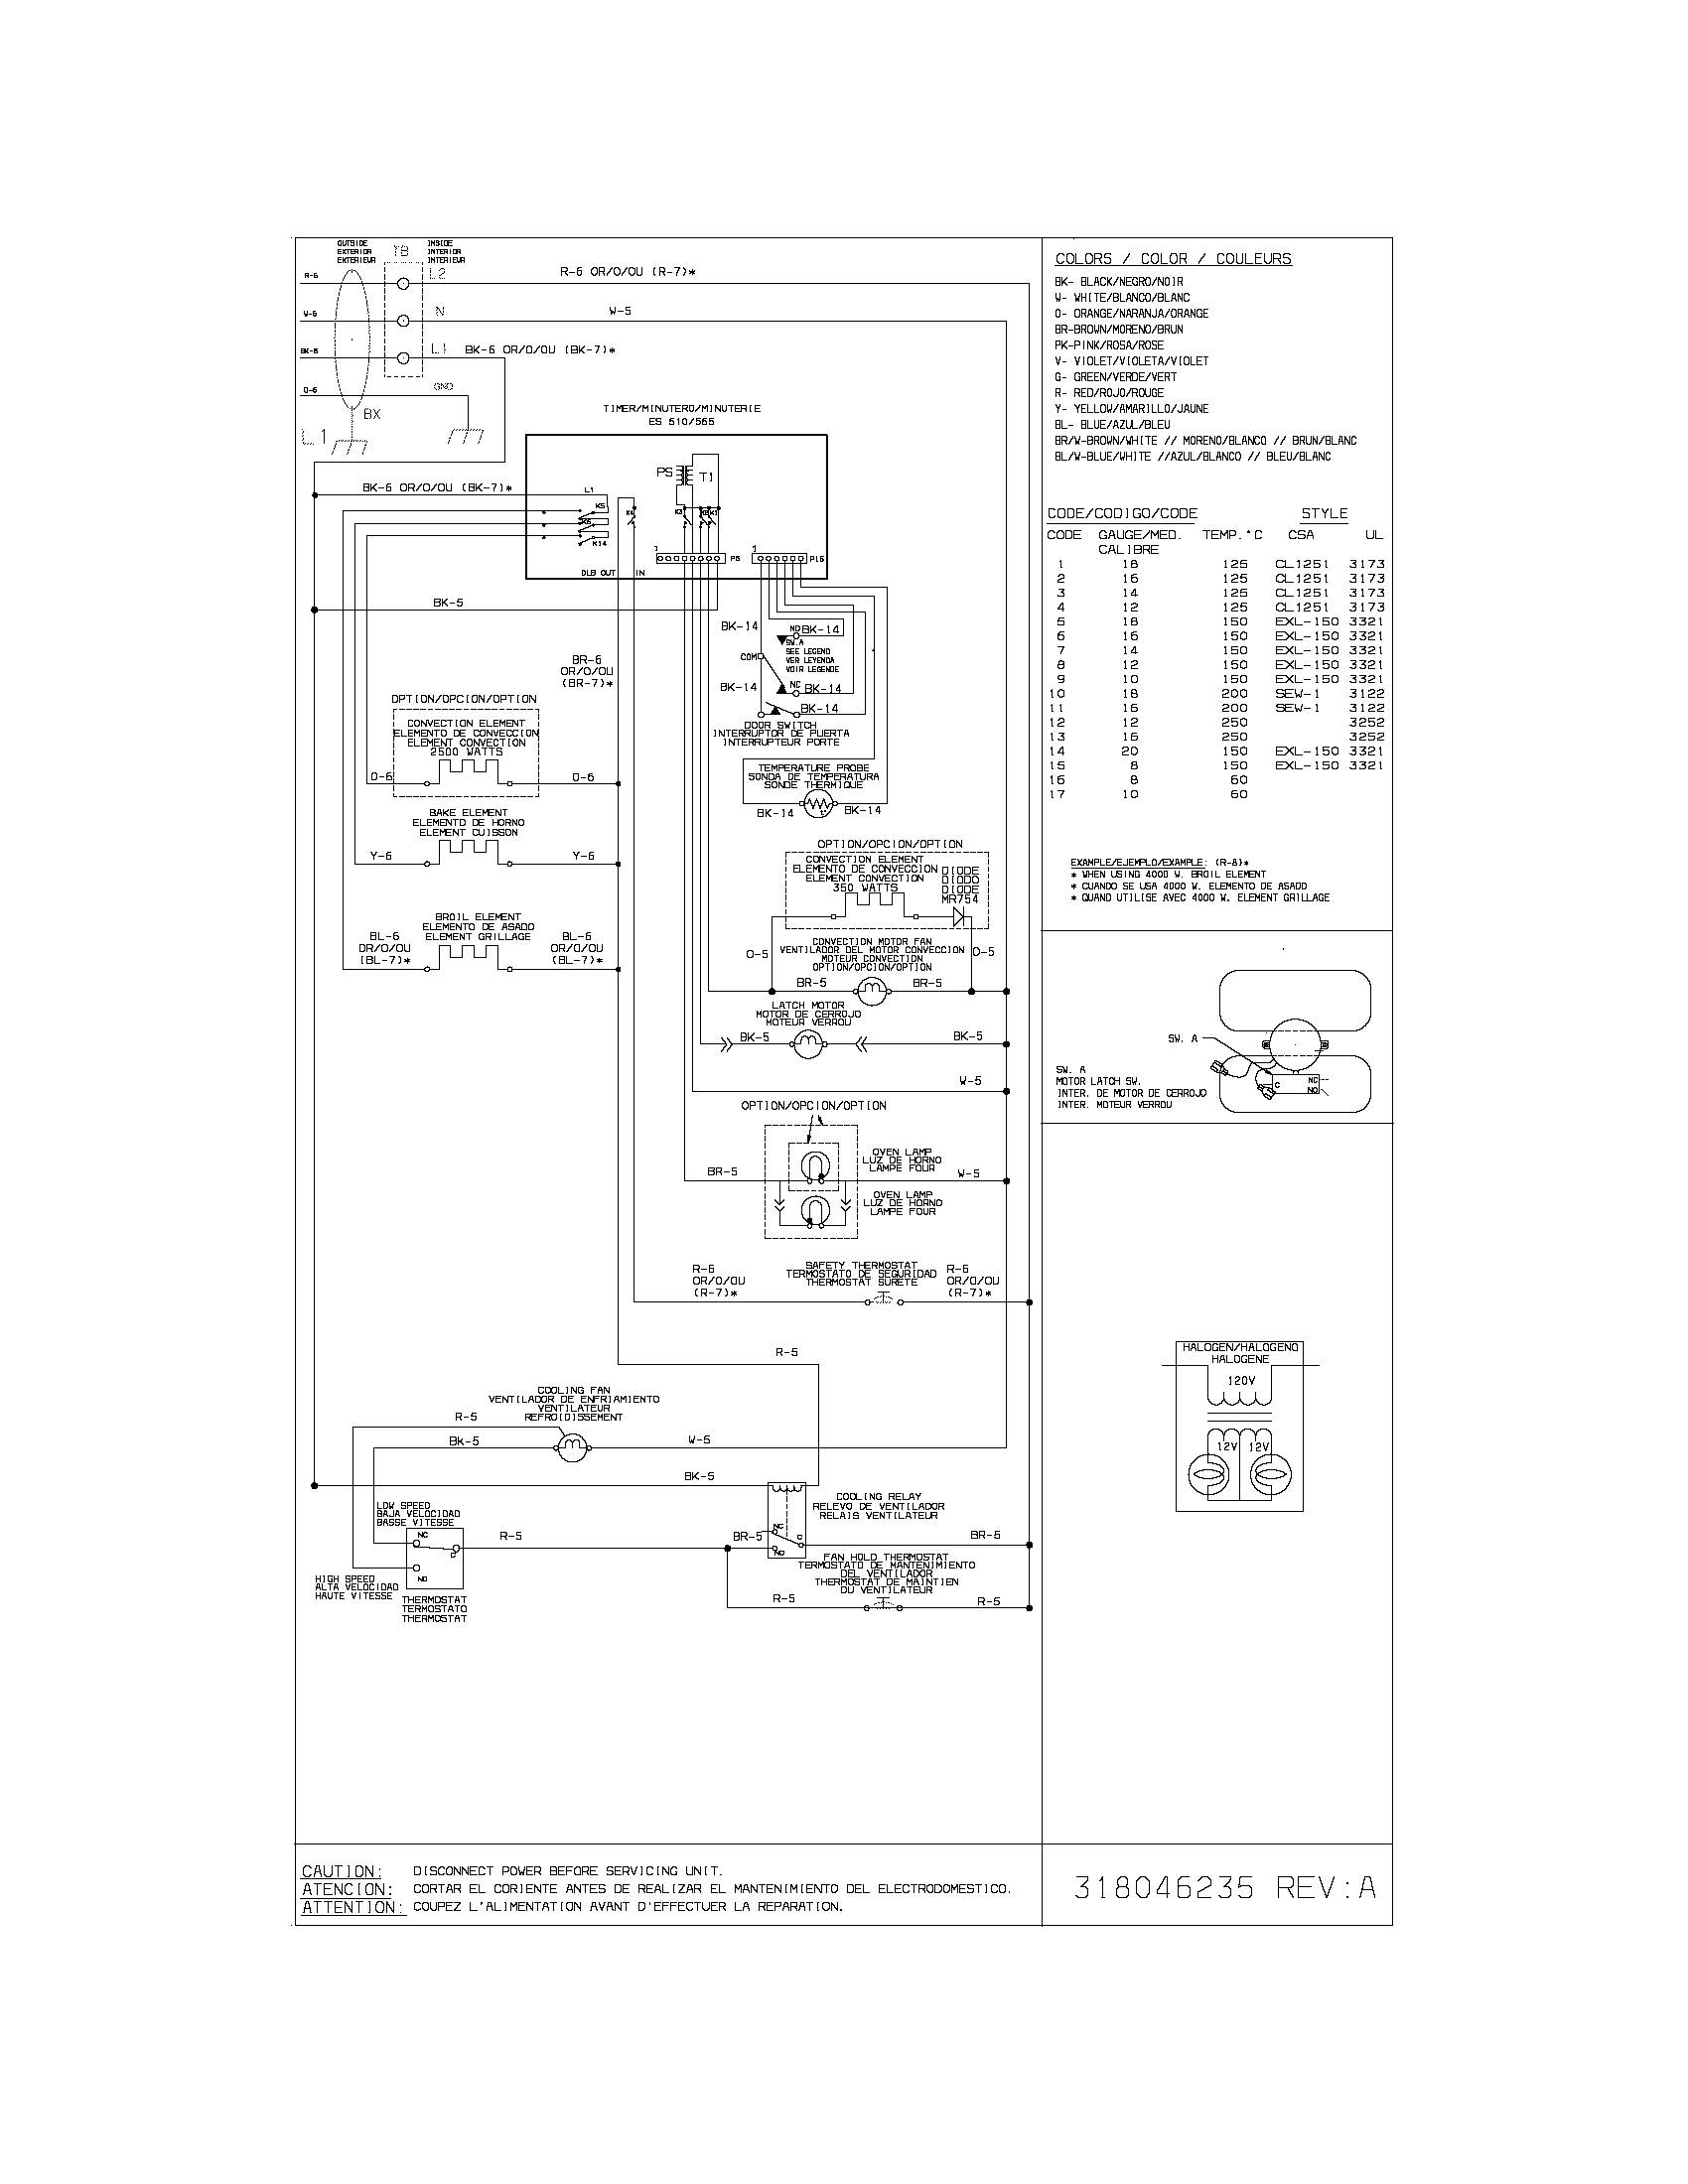 ✦DIAGRAM BASED✦ Amana Ned5100tq1 Wiring Diagram Model COMPLETED DIAGRAM  BASE Diagram Model - MARIA.BOULDING.NETWORKDIAGRAM.PORTPLAISANCECALVI.FRDiagram Based Completed Edition - portplaisancecalvi